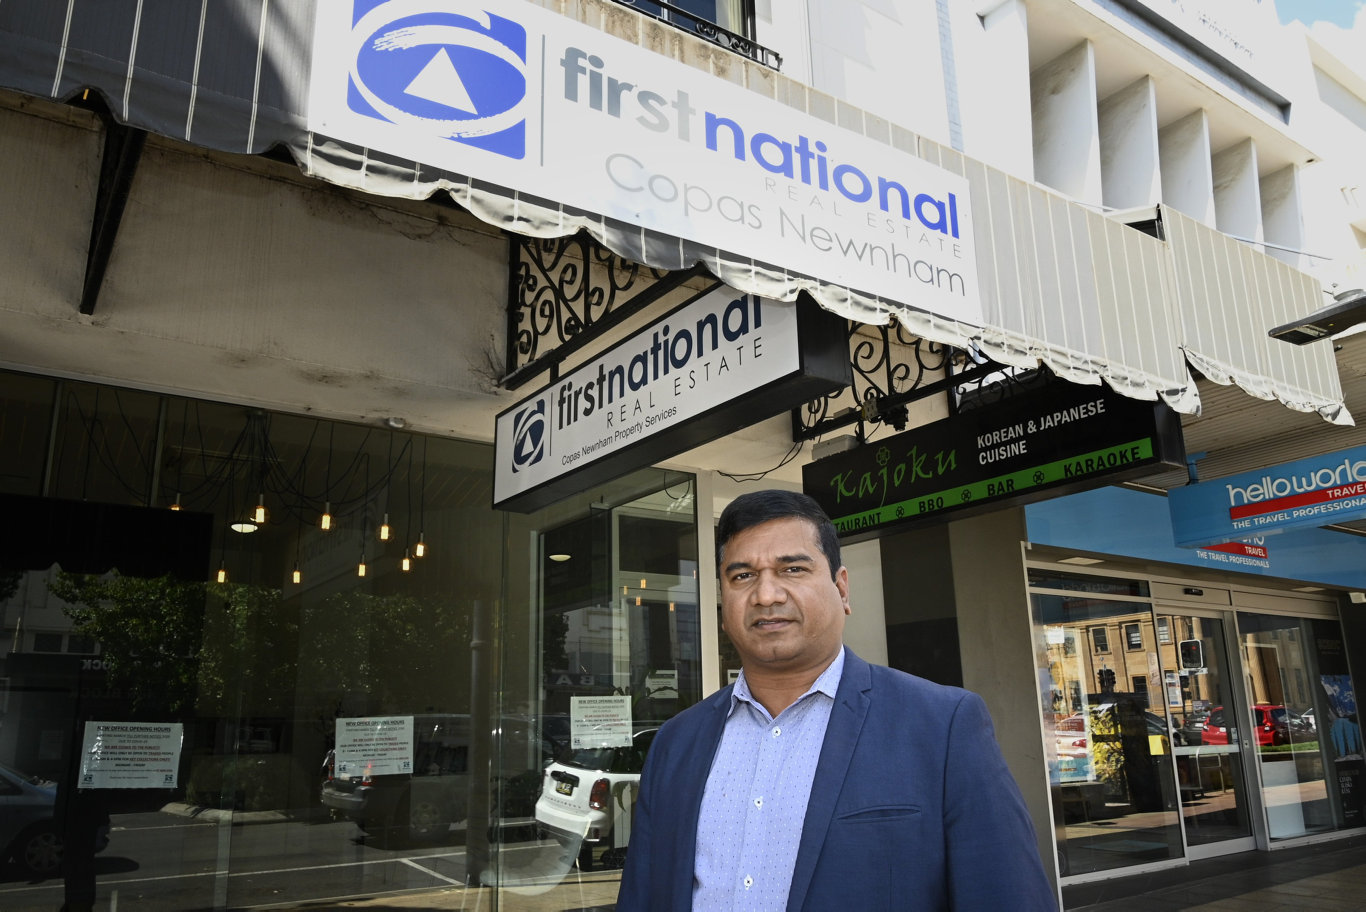 Syed Khudbuddin, managing director of Copas Newnham First National Real Estate Picture: Bev Lacey